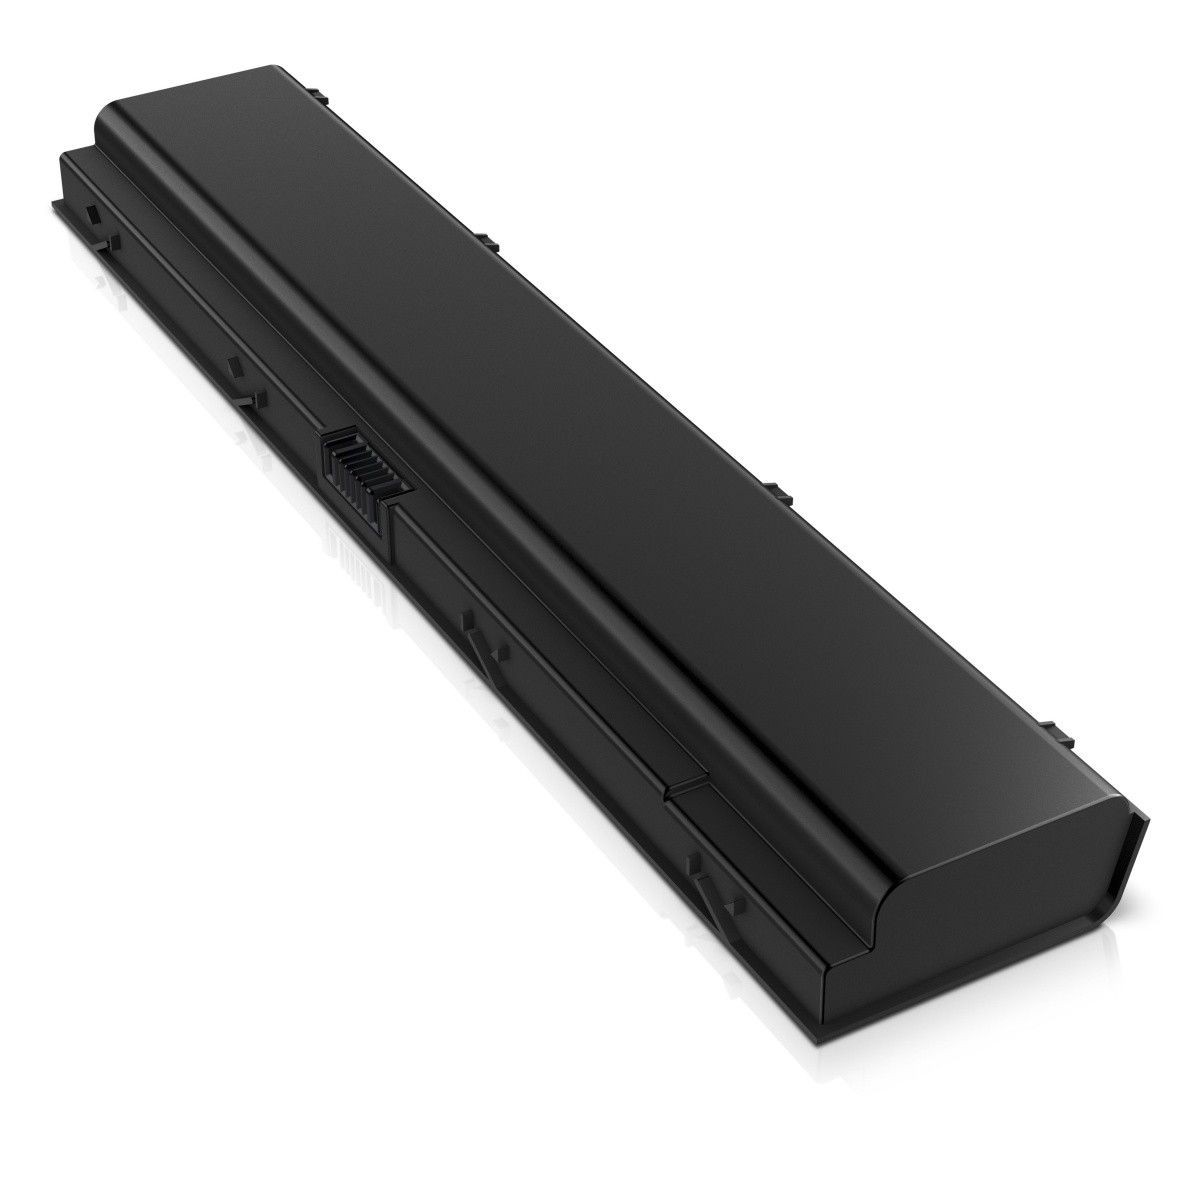 HP PR08 Notebook Battery for 4730s